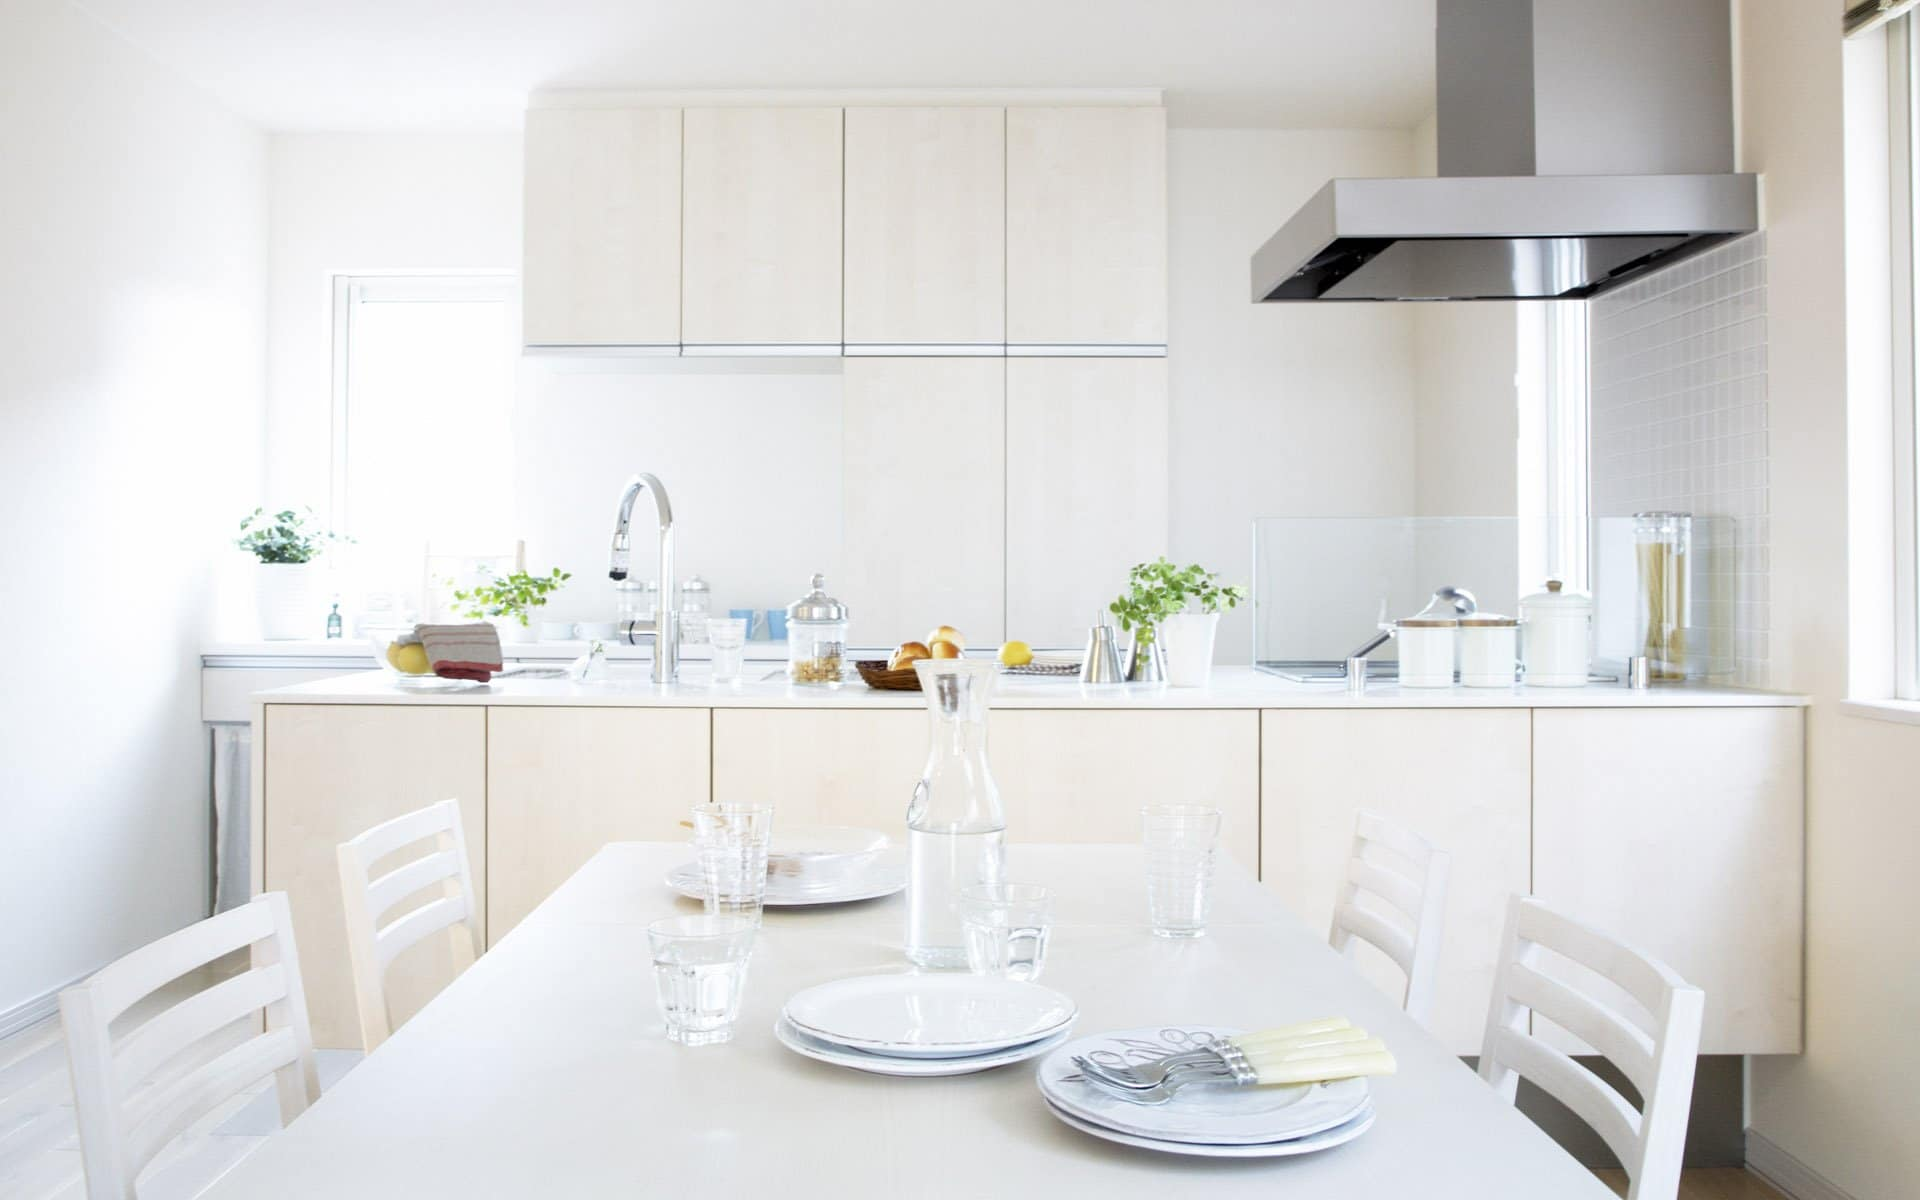 Pastel colored kitchen with minimalistic furniture set and white table